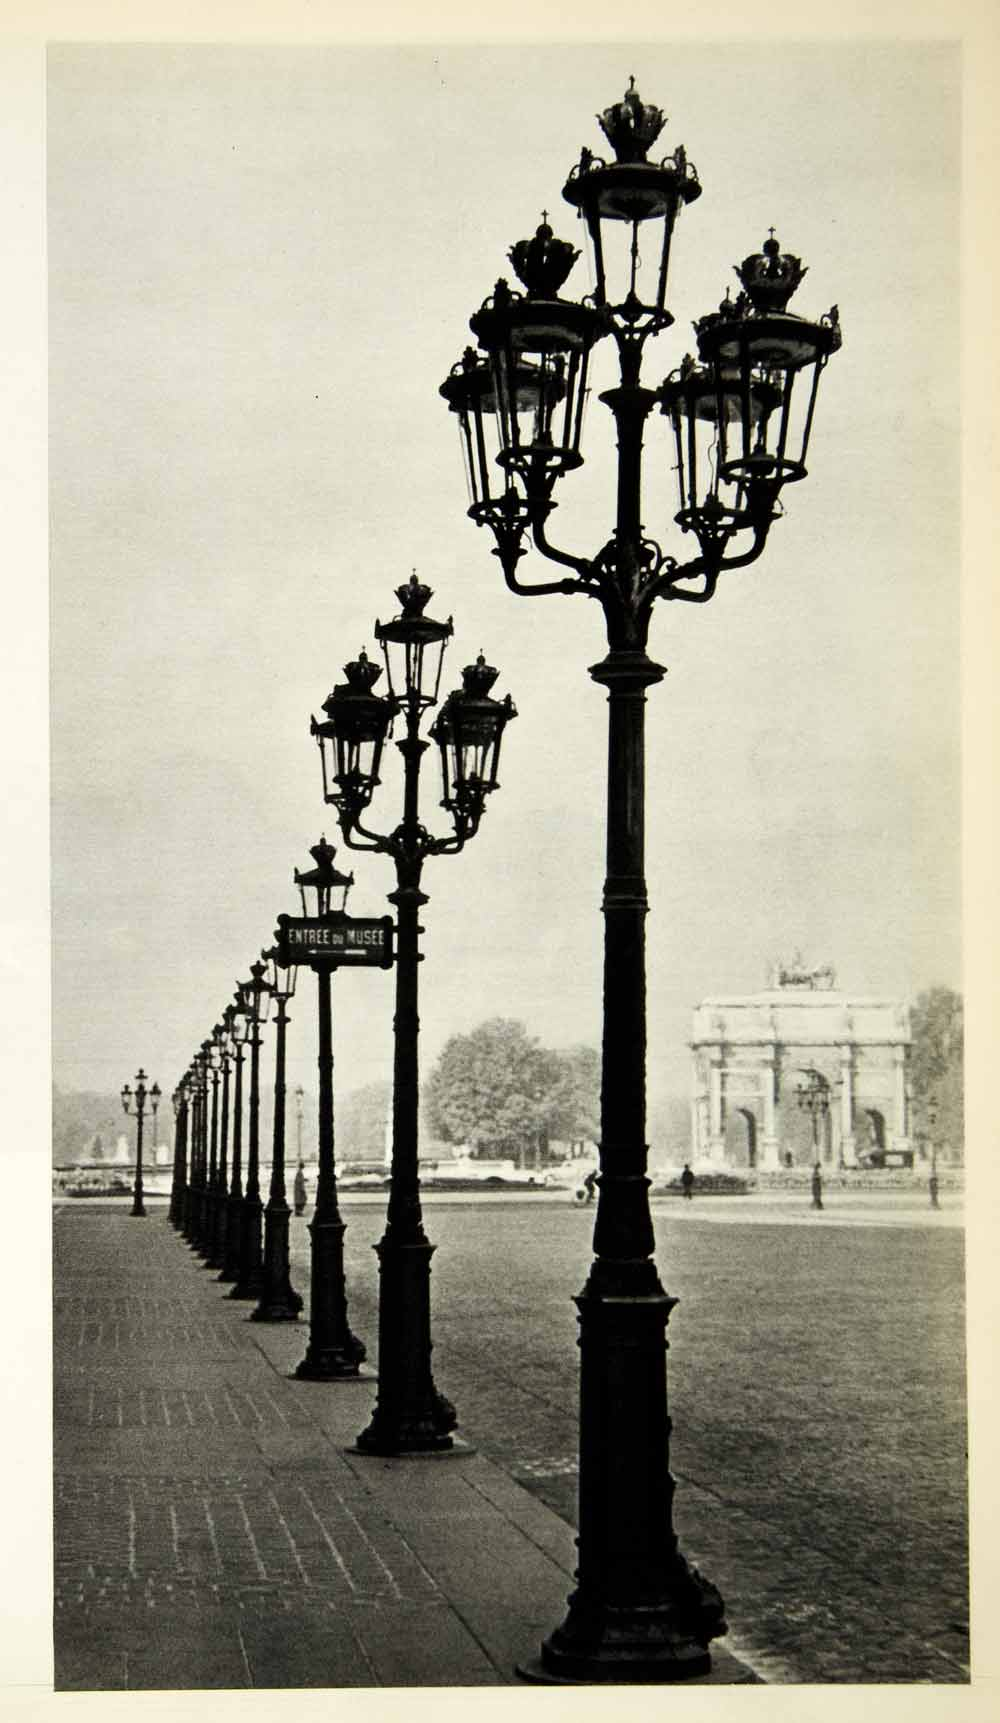 1954 Rotogravure Lamppost Filigreed Entrance Louvre Paris France Roth XGRC1